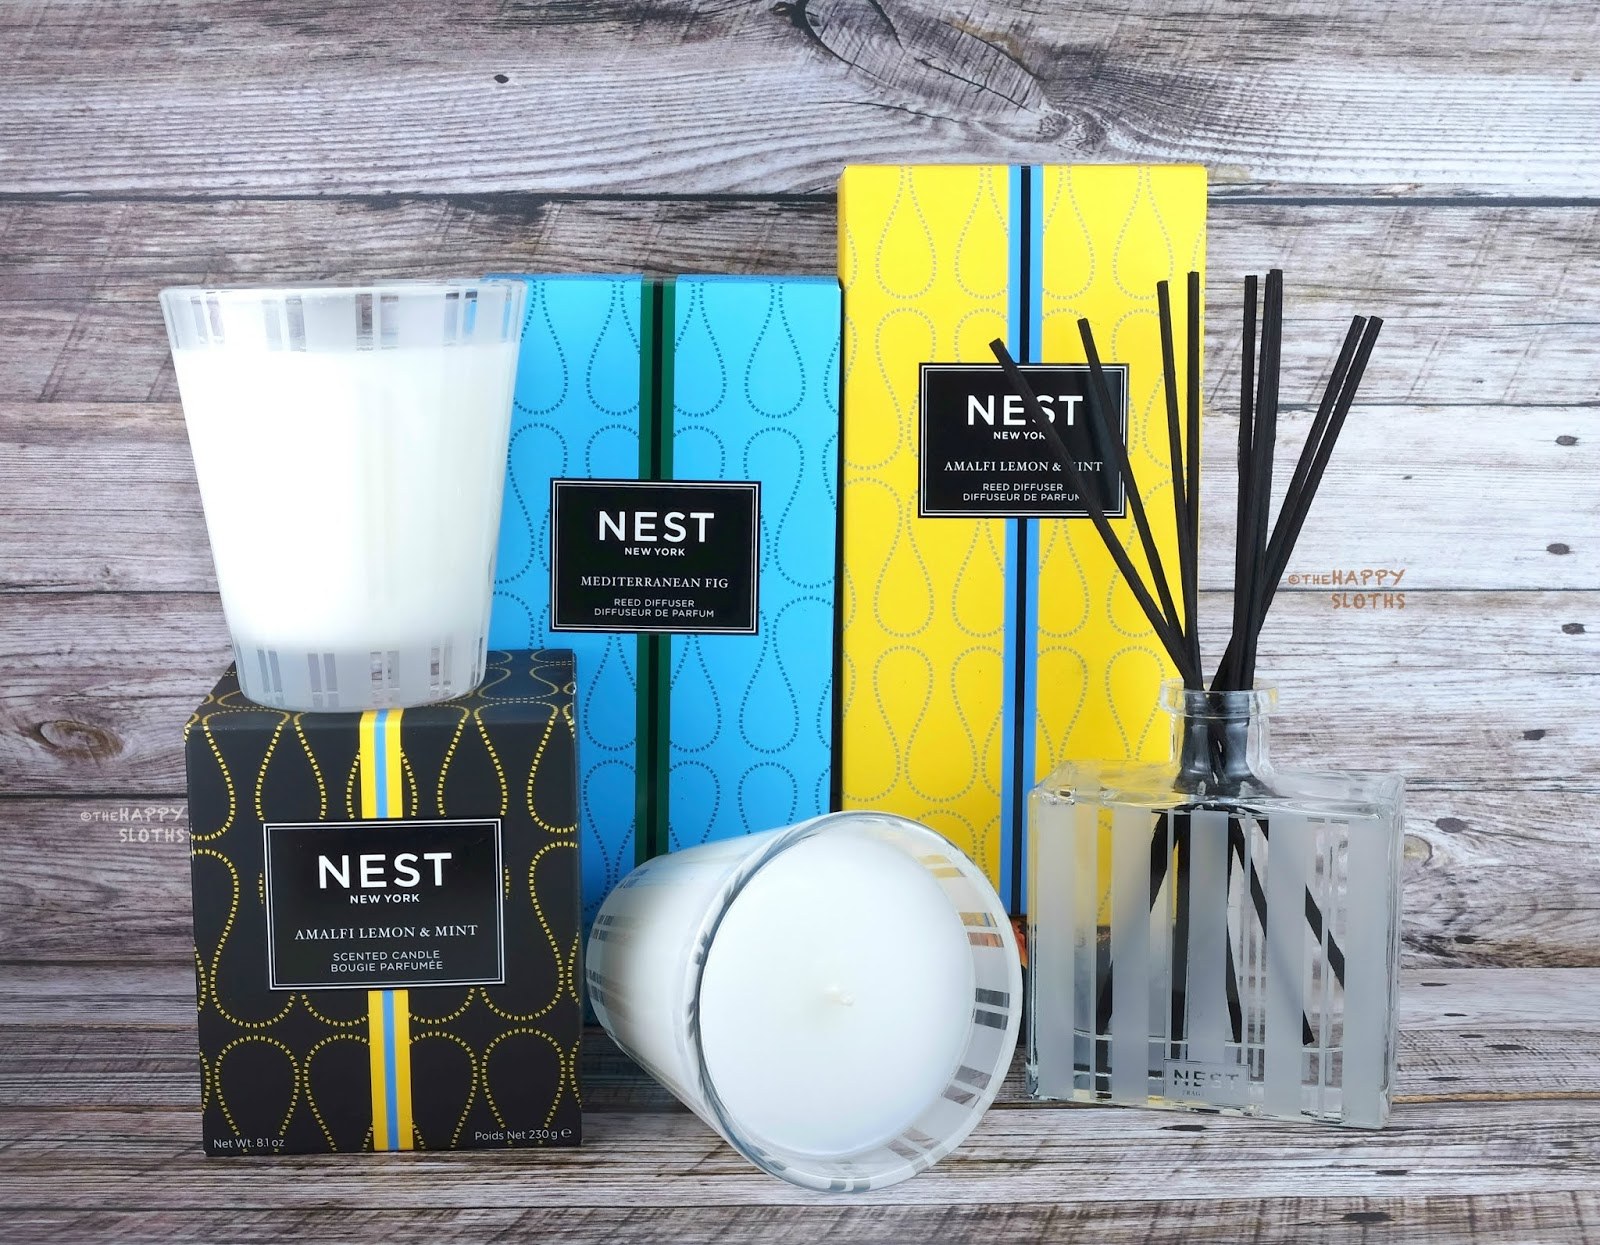 NEST Fragrances | Amalfi Lemon & Mint and Mediterranean Fig Home Fragrance Collections: Review